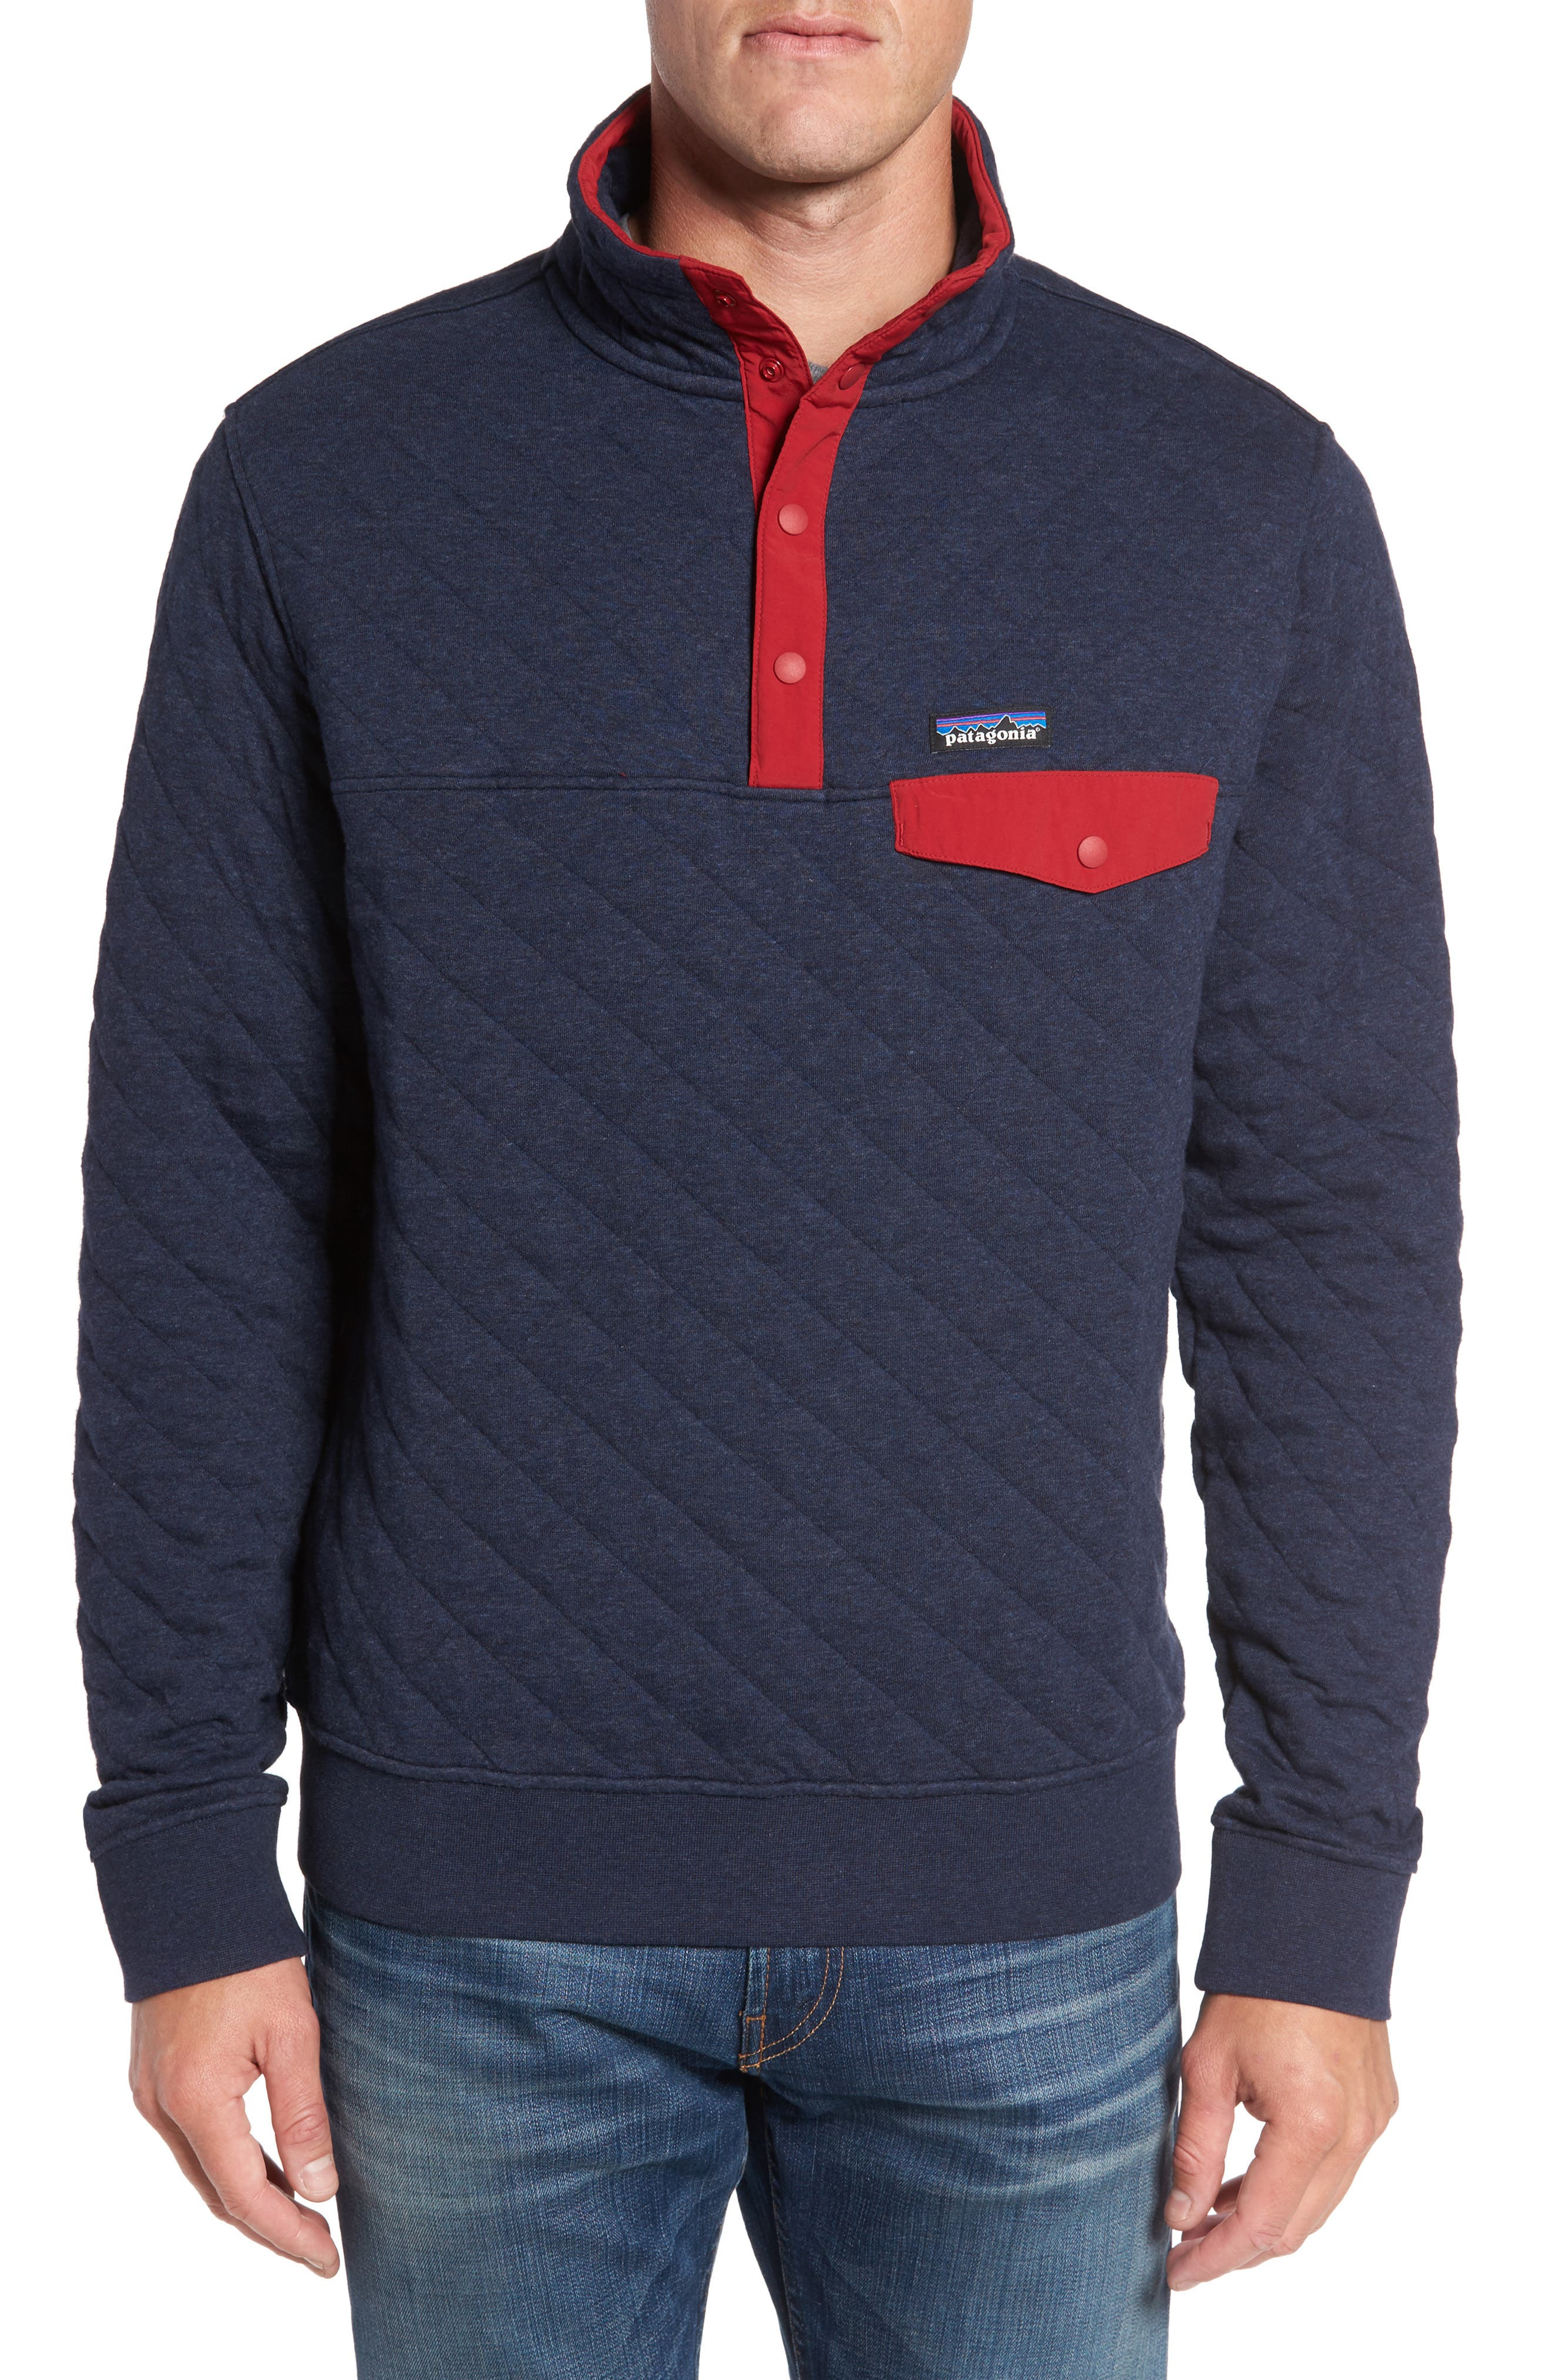 Alternate Image 1 Selected - Patagonia Snap-T® Quilted Fleece Pullover